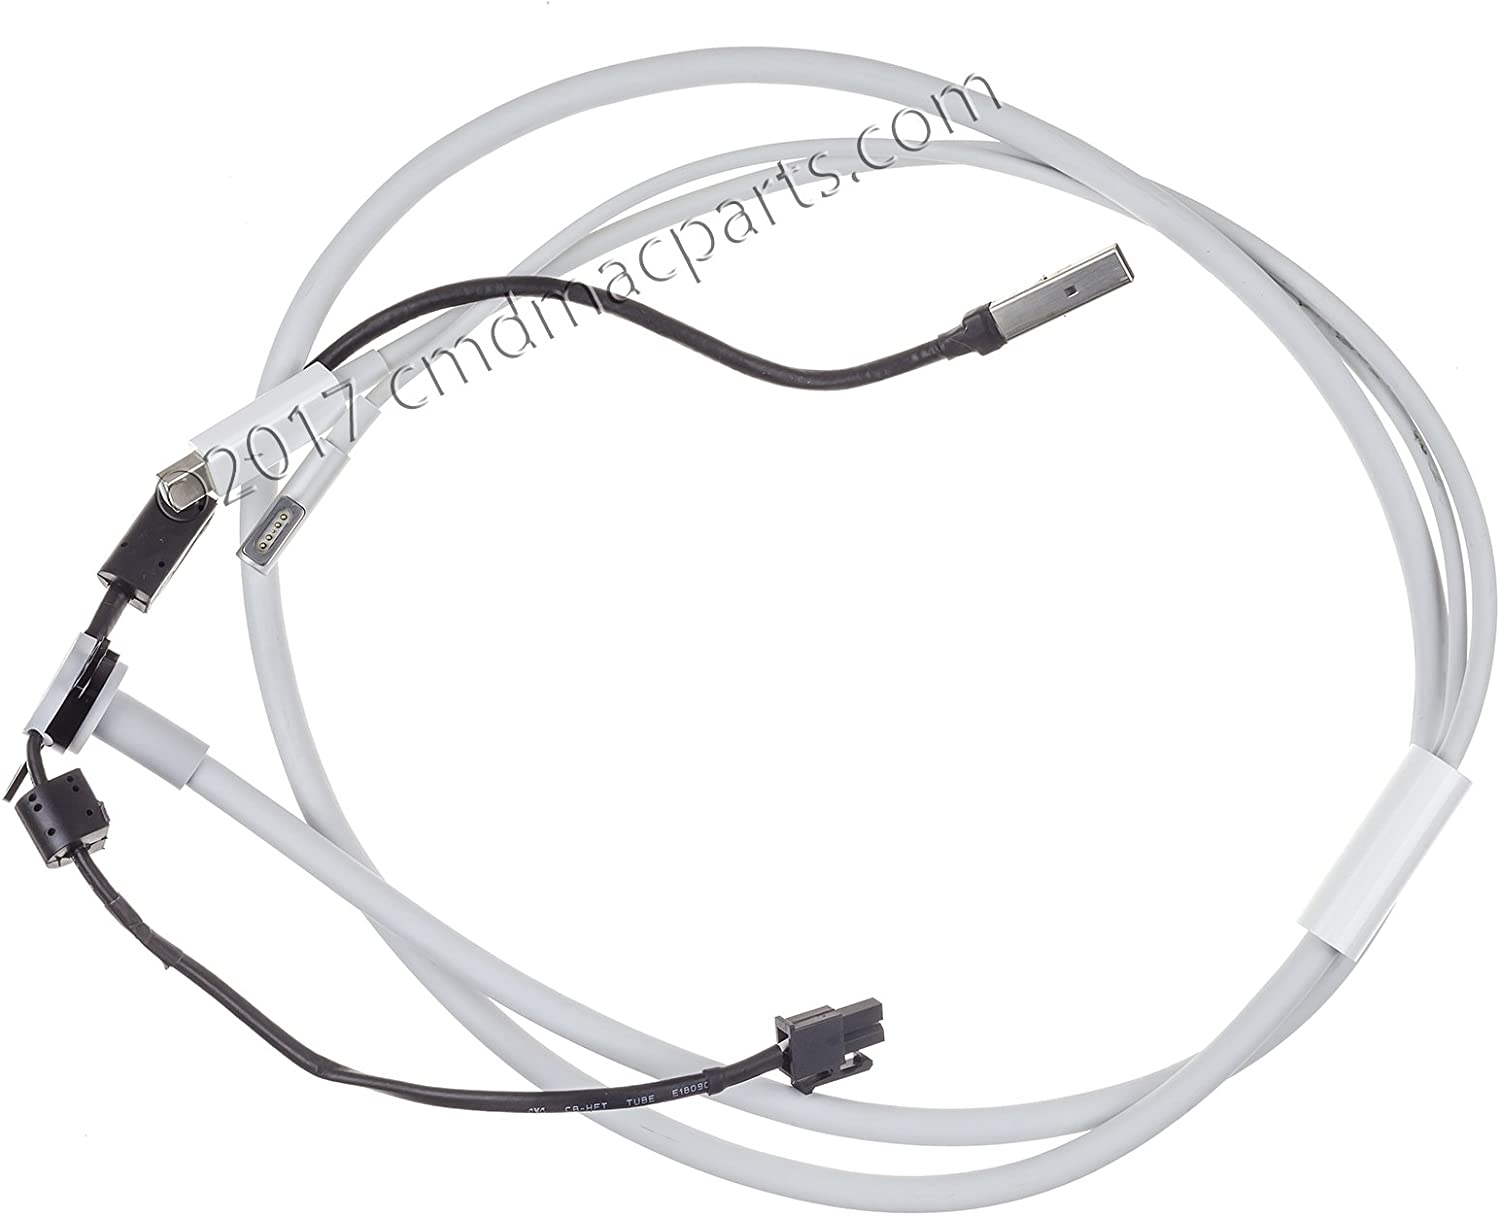 "Odyson - All-in-One Cable Replacement for Apple Thunderbolt Display 27"" A1407 (Mid 2011)"